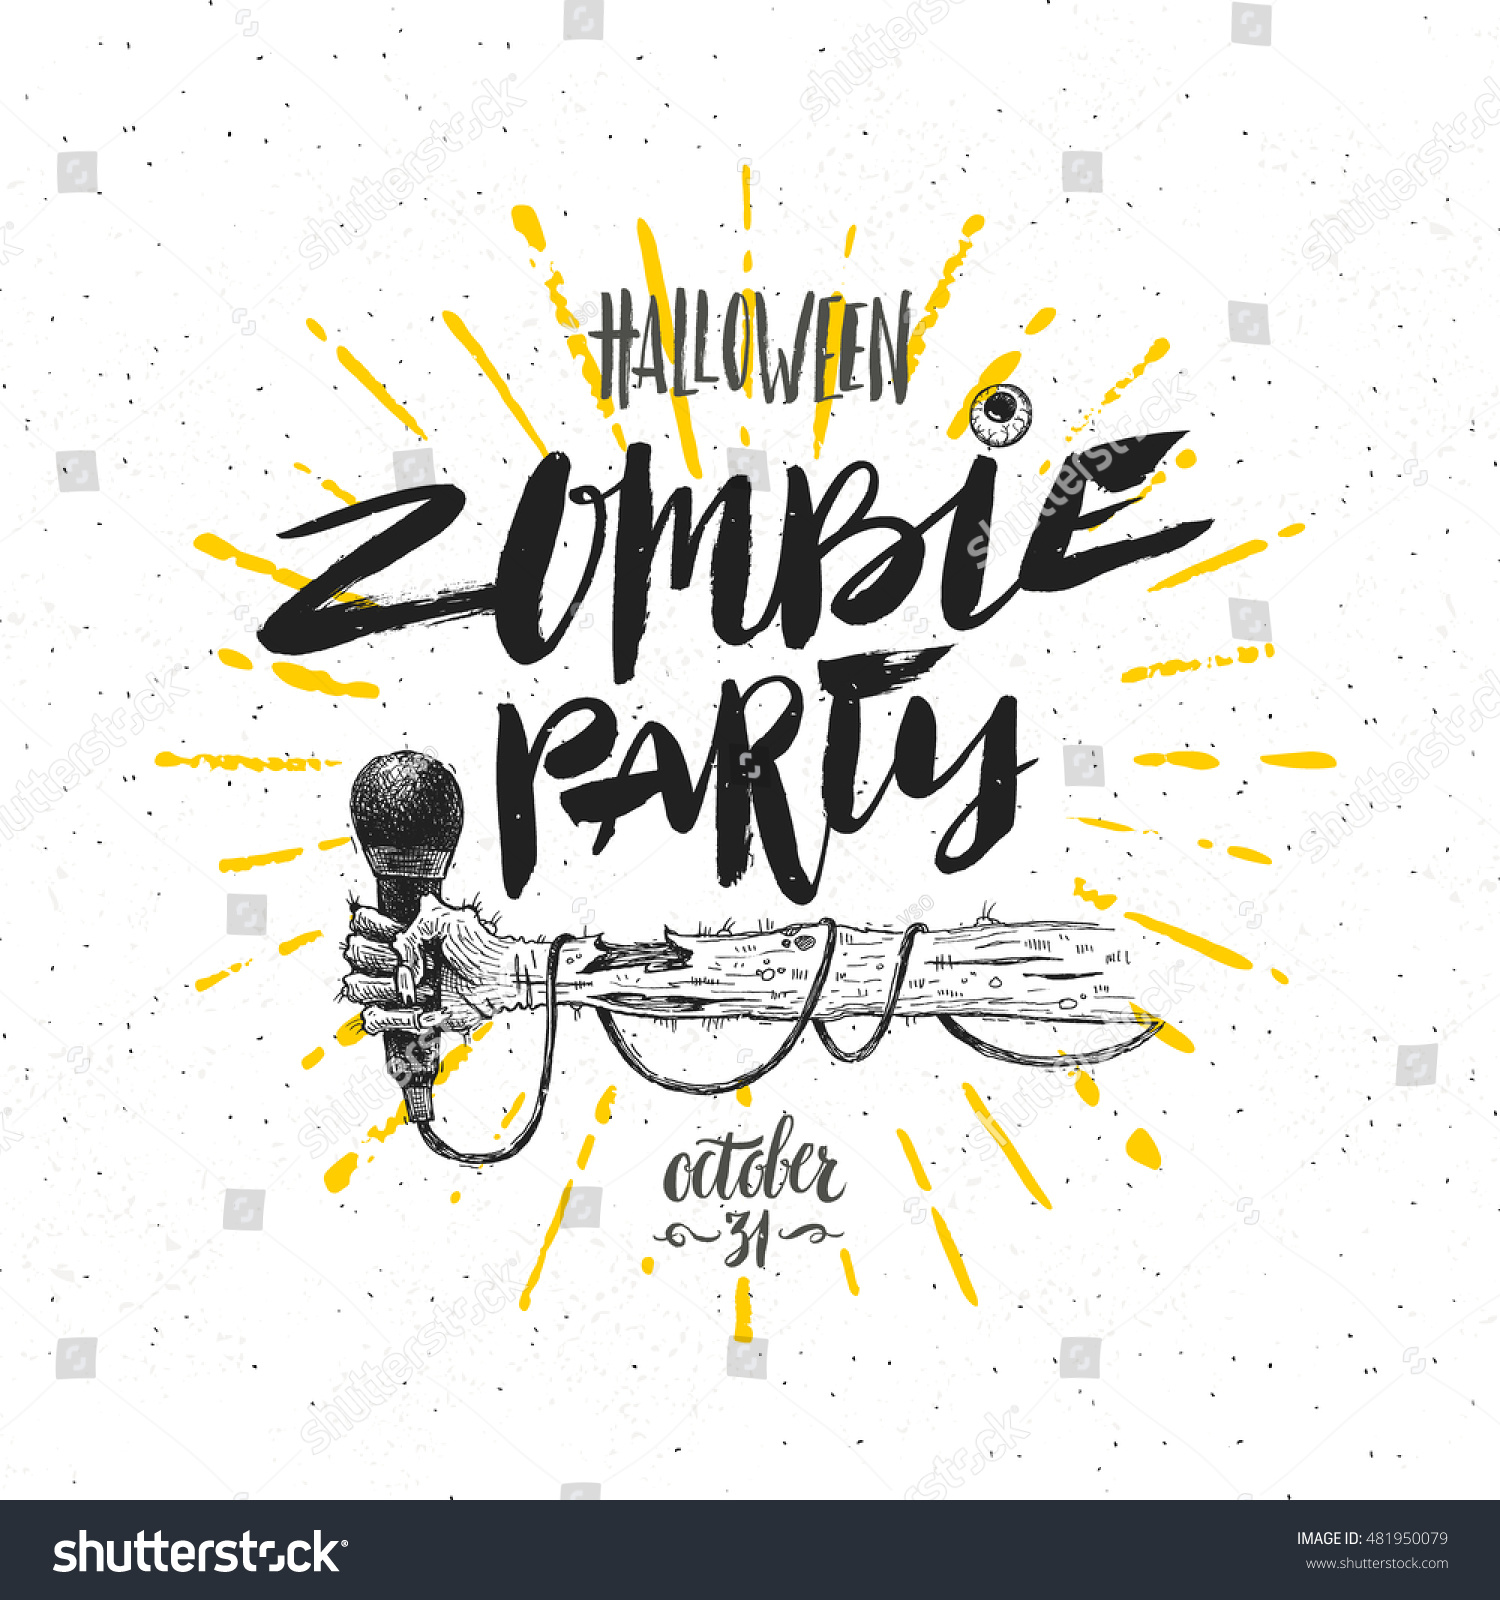 Zombie Party Vector Illustration Halloween Greeting Stock Vector ...